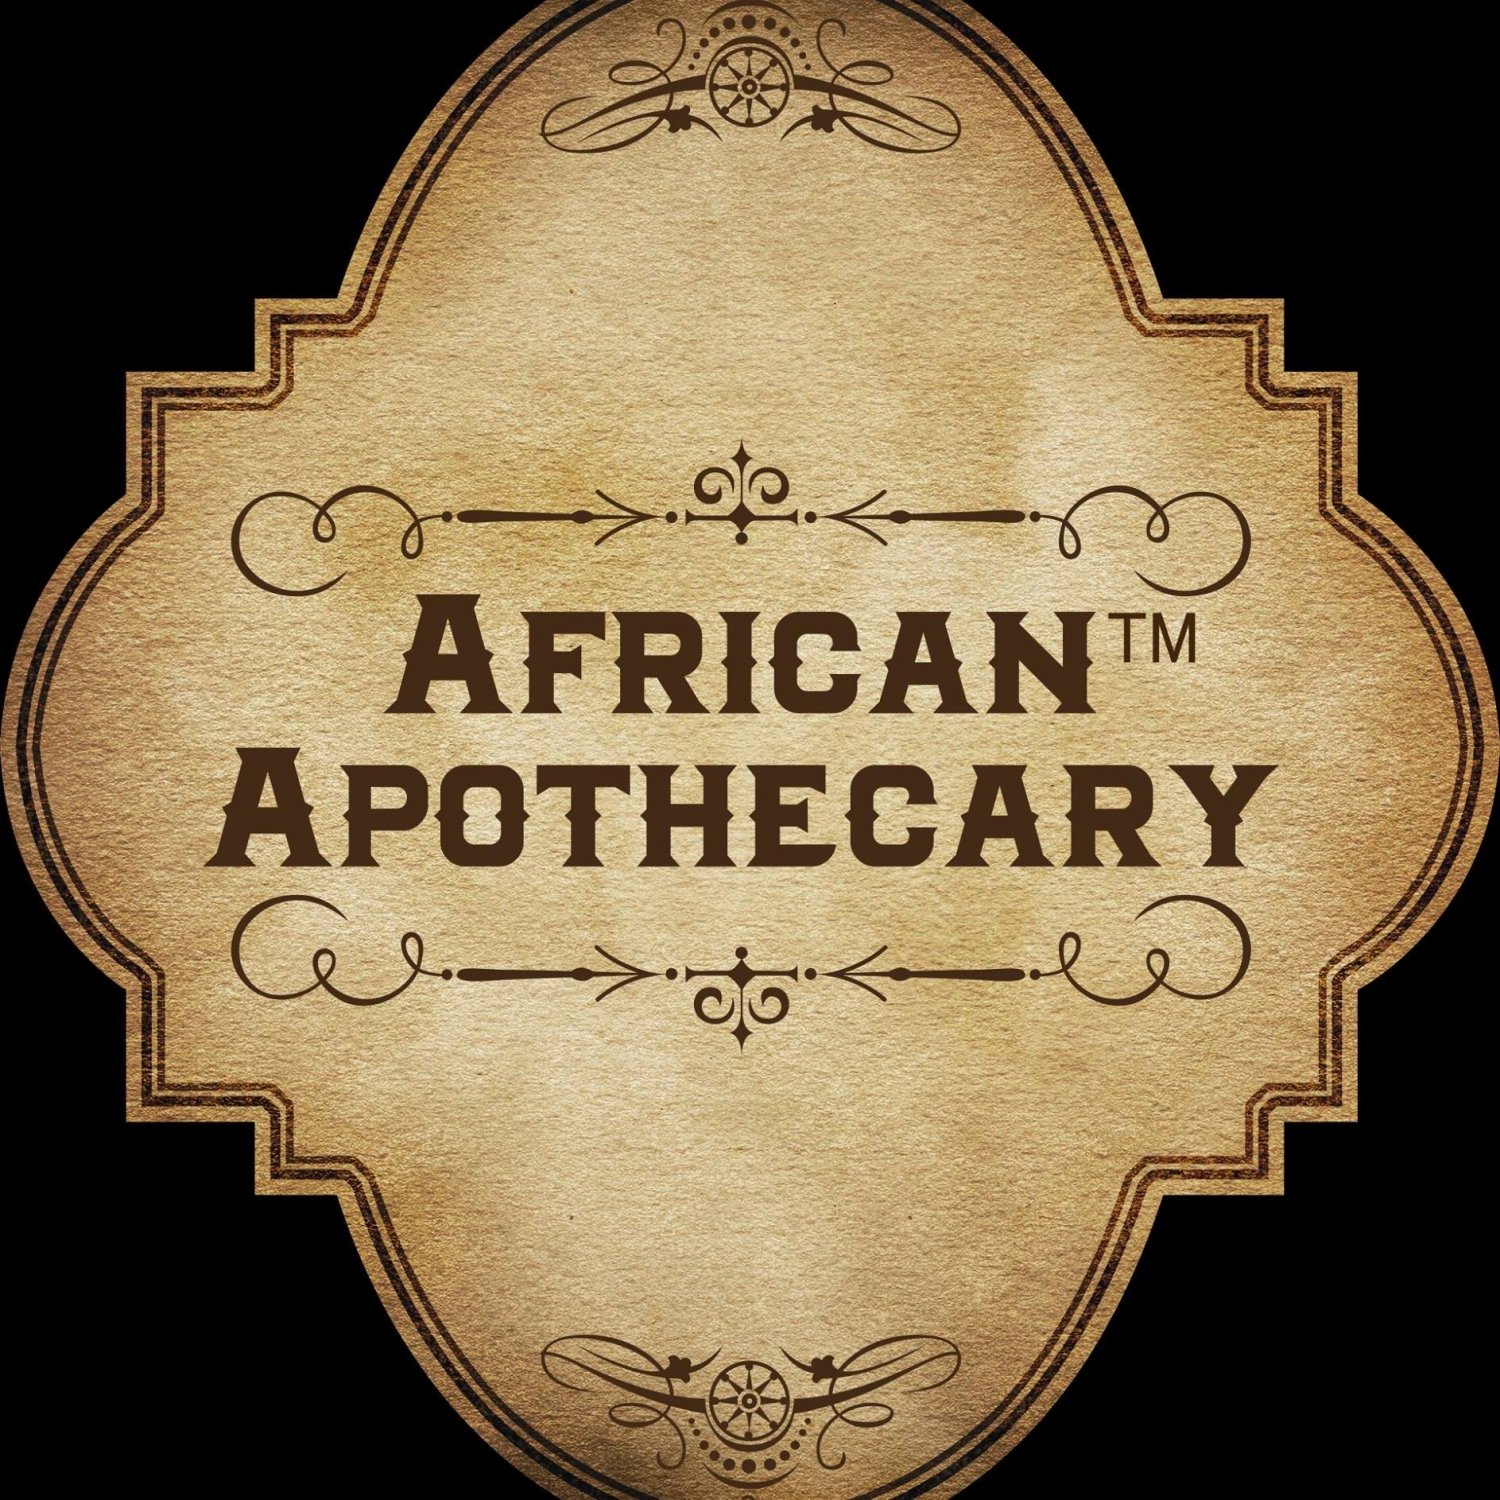 African Apothecary Fundraisng